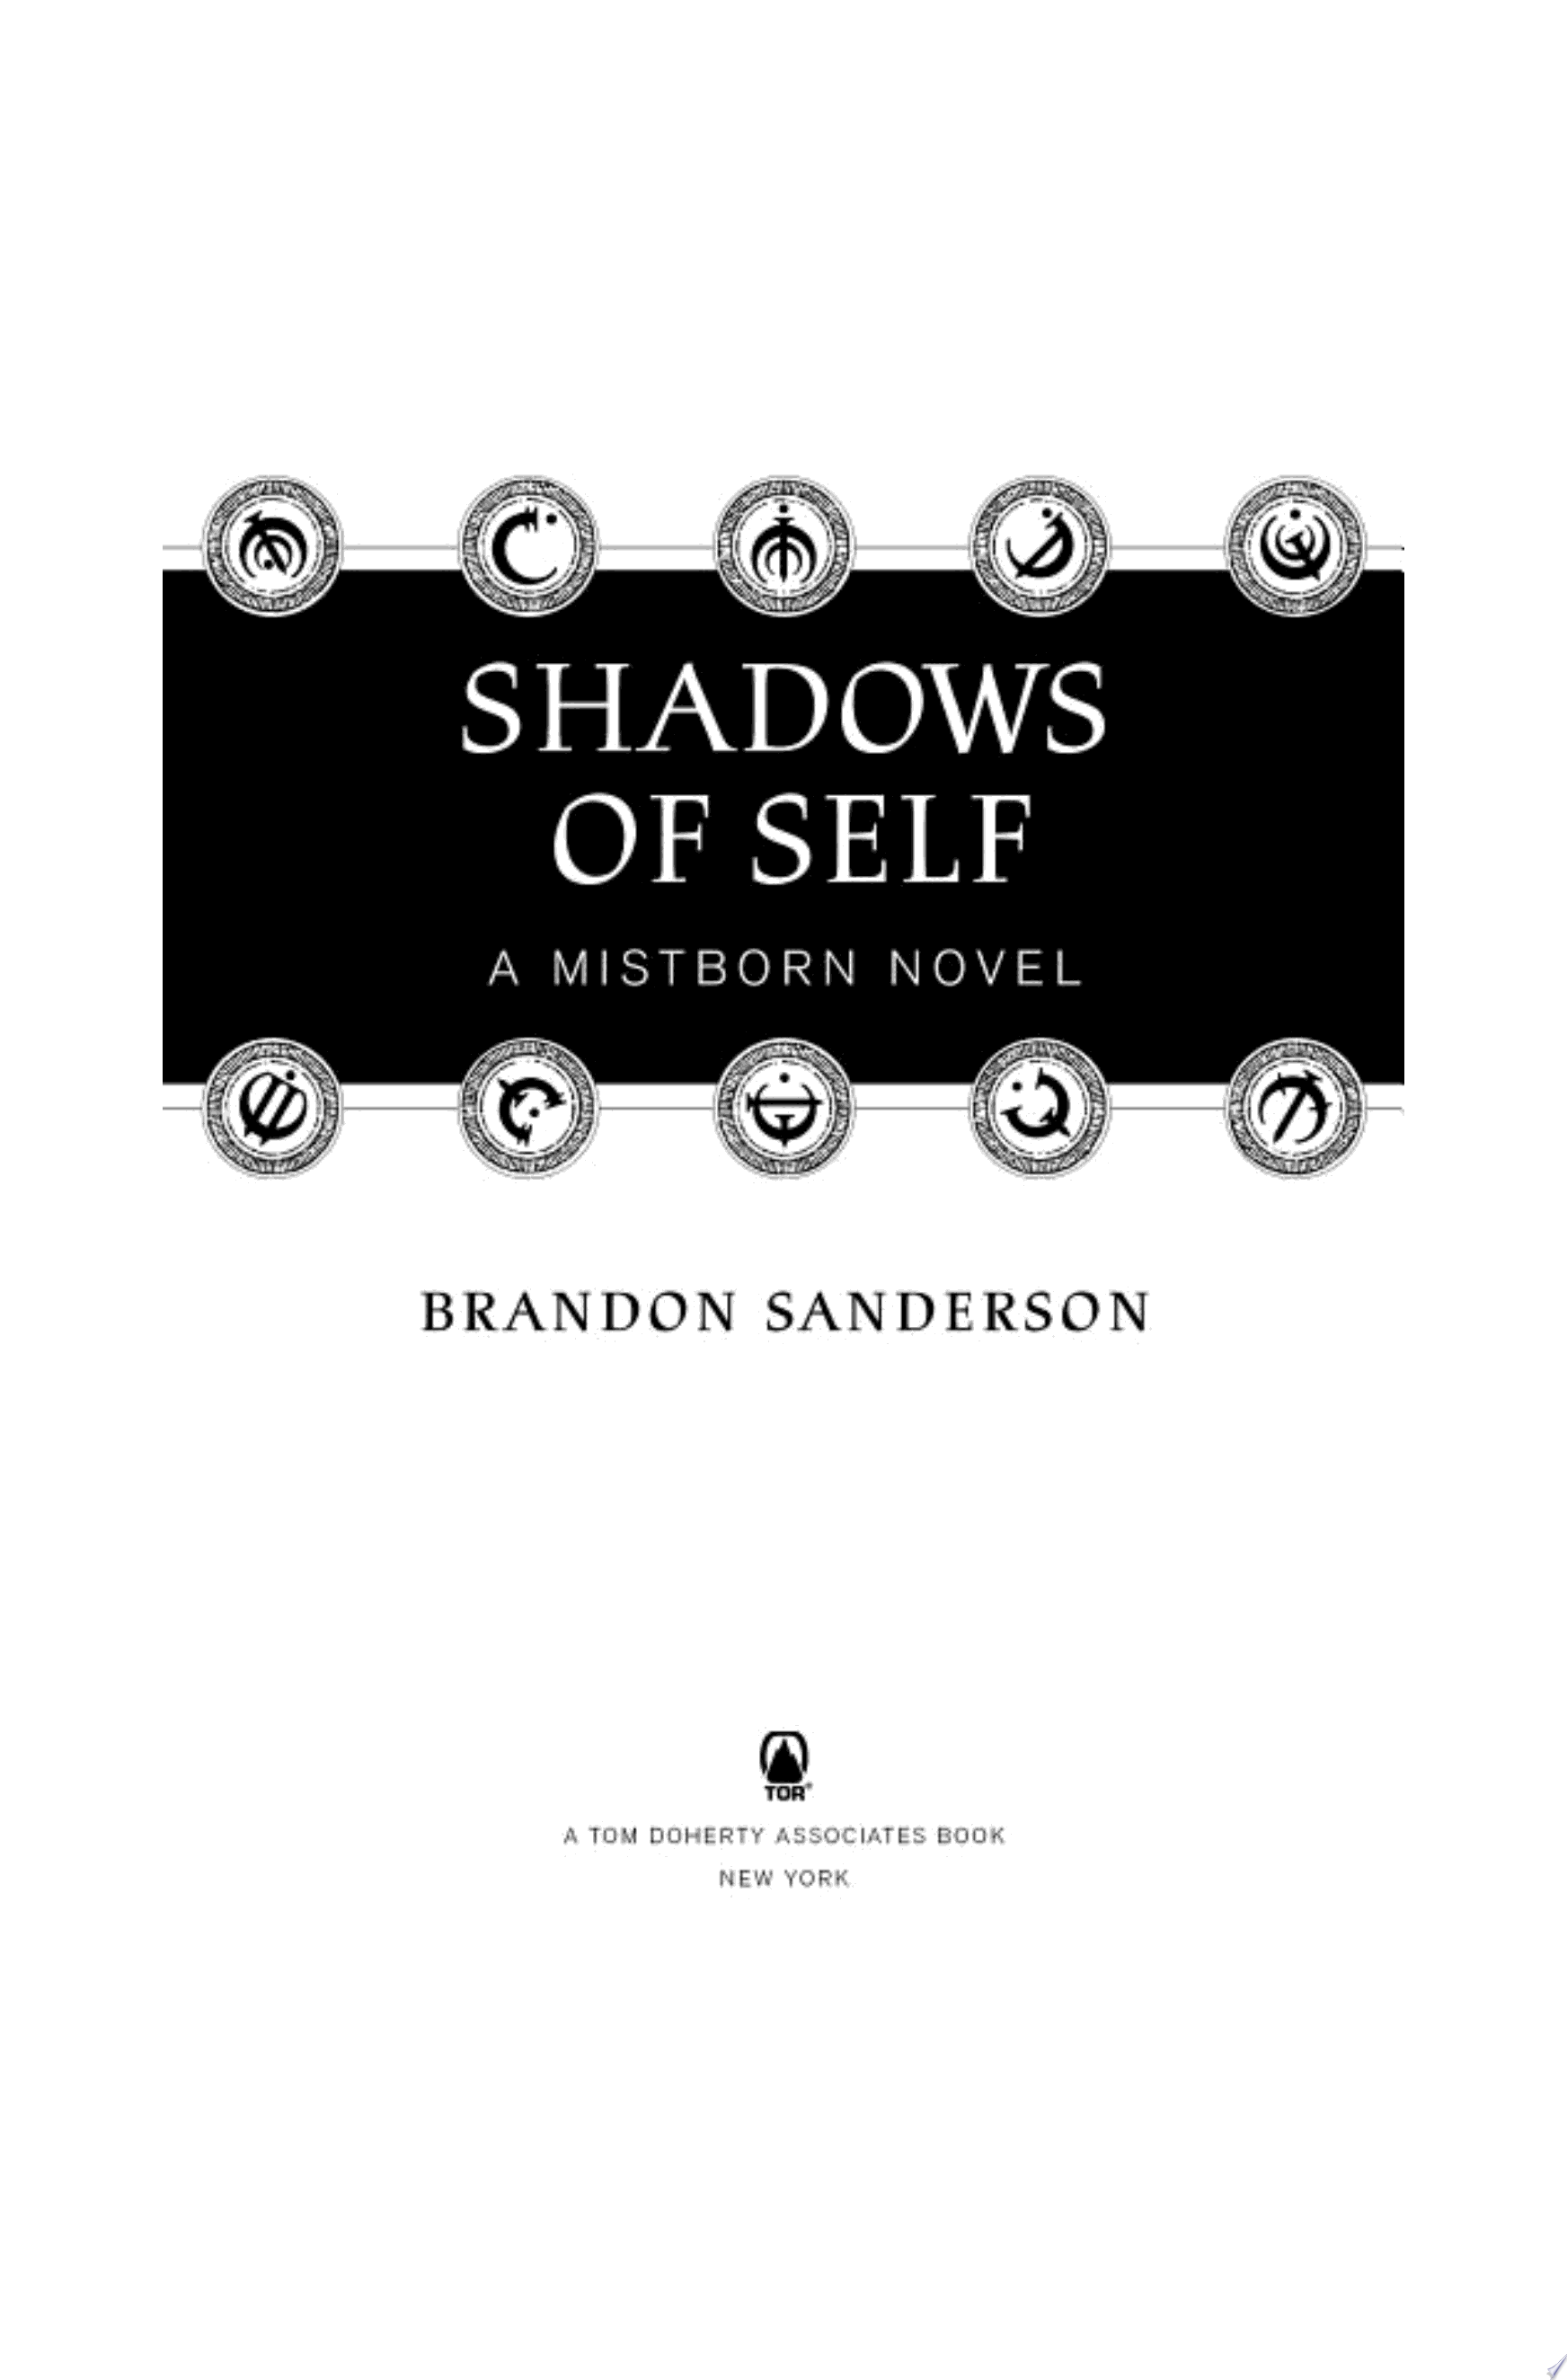 Shadows of Self